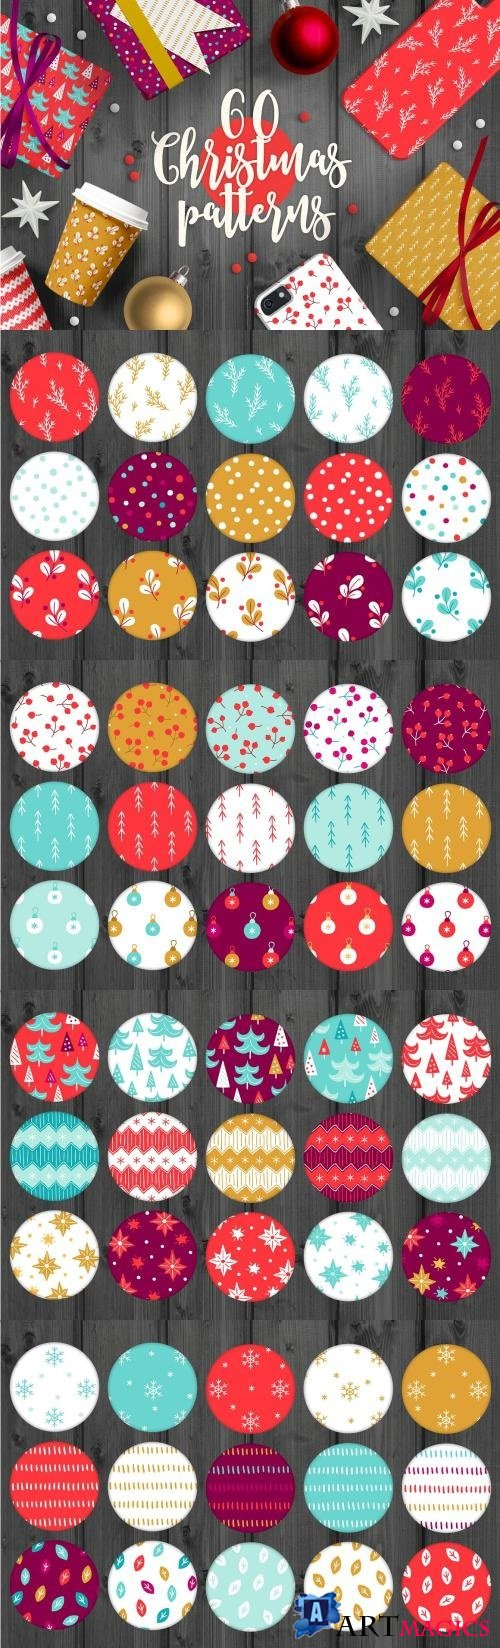 60 Christmas Seamless Patterns - 1986473